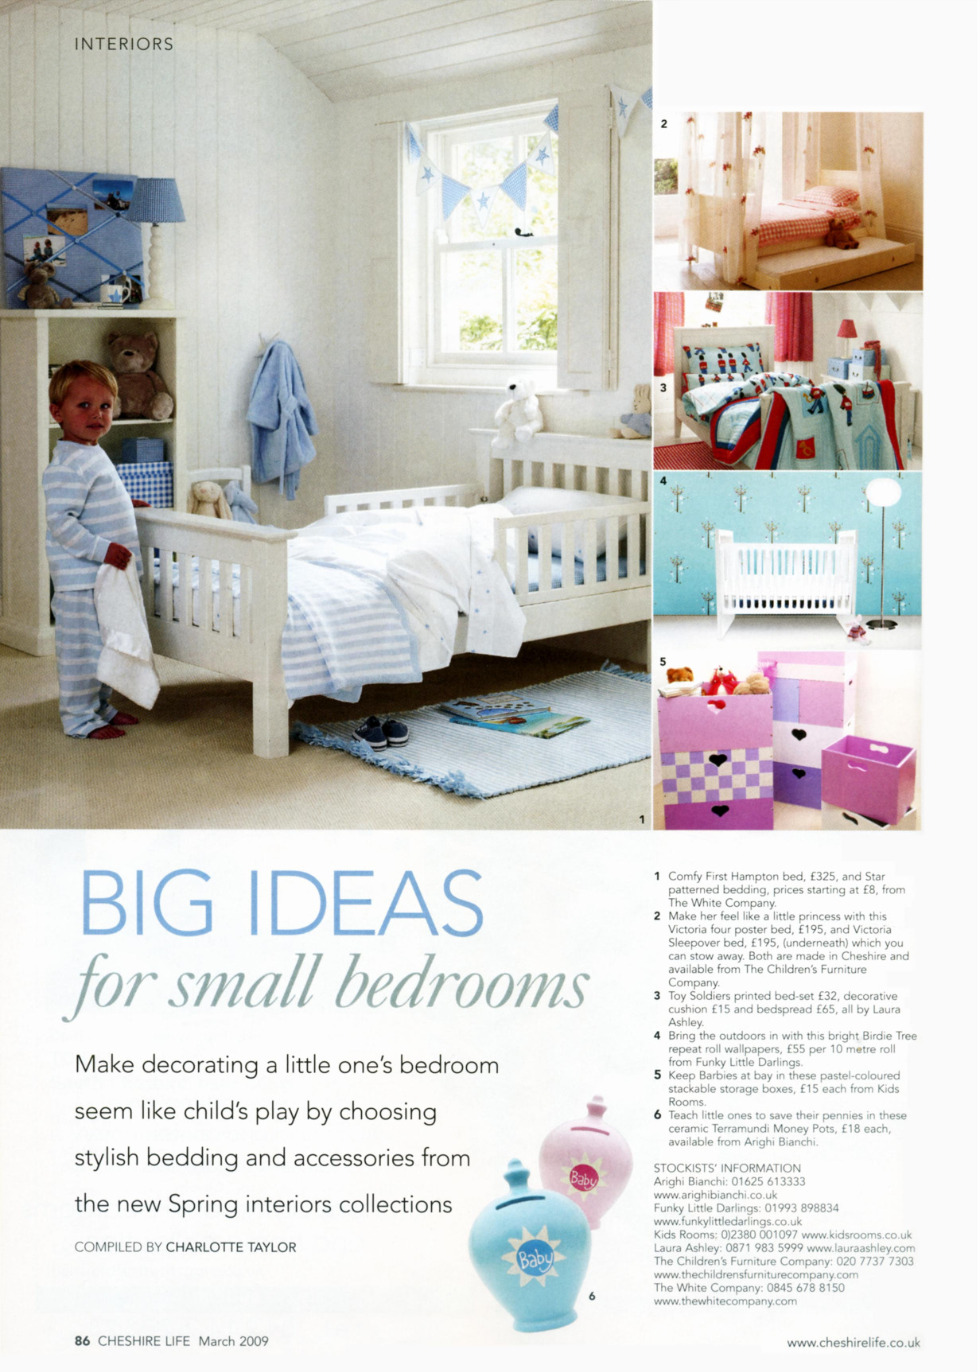 Big ideas for small rooms - feature on decorating compact children's bedrooms